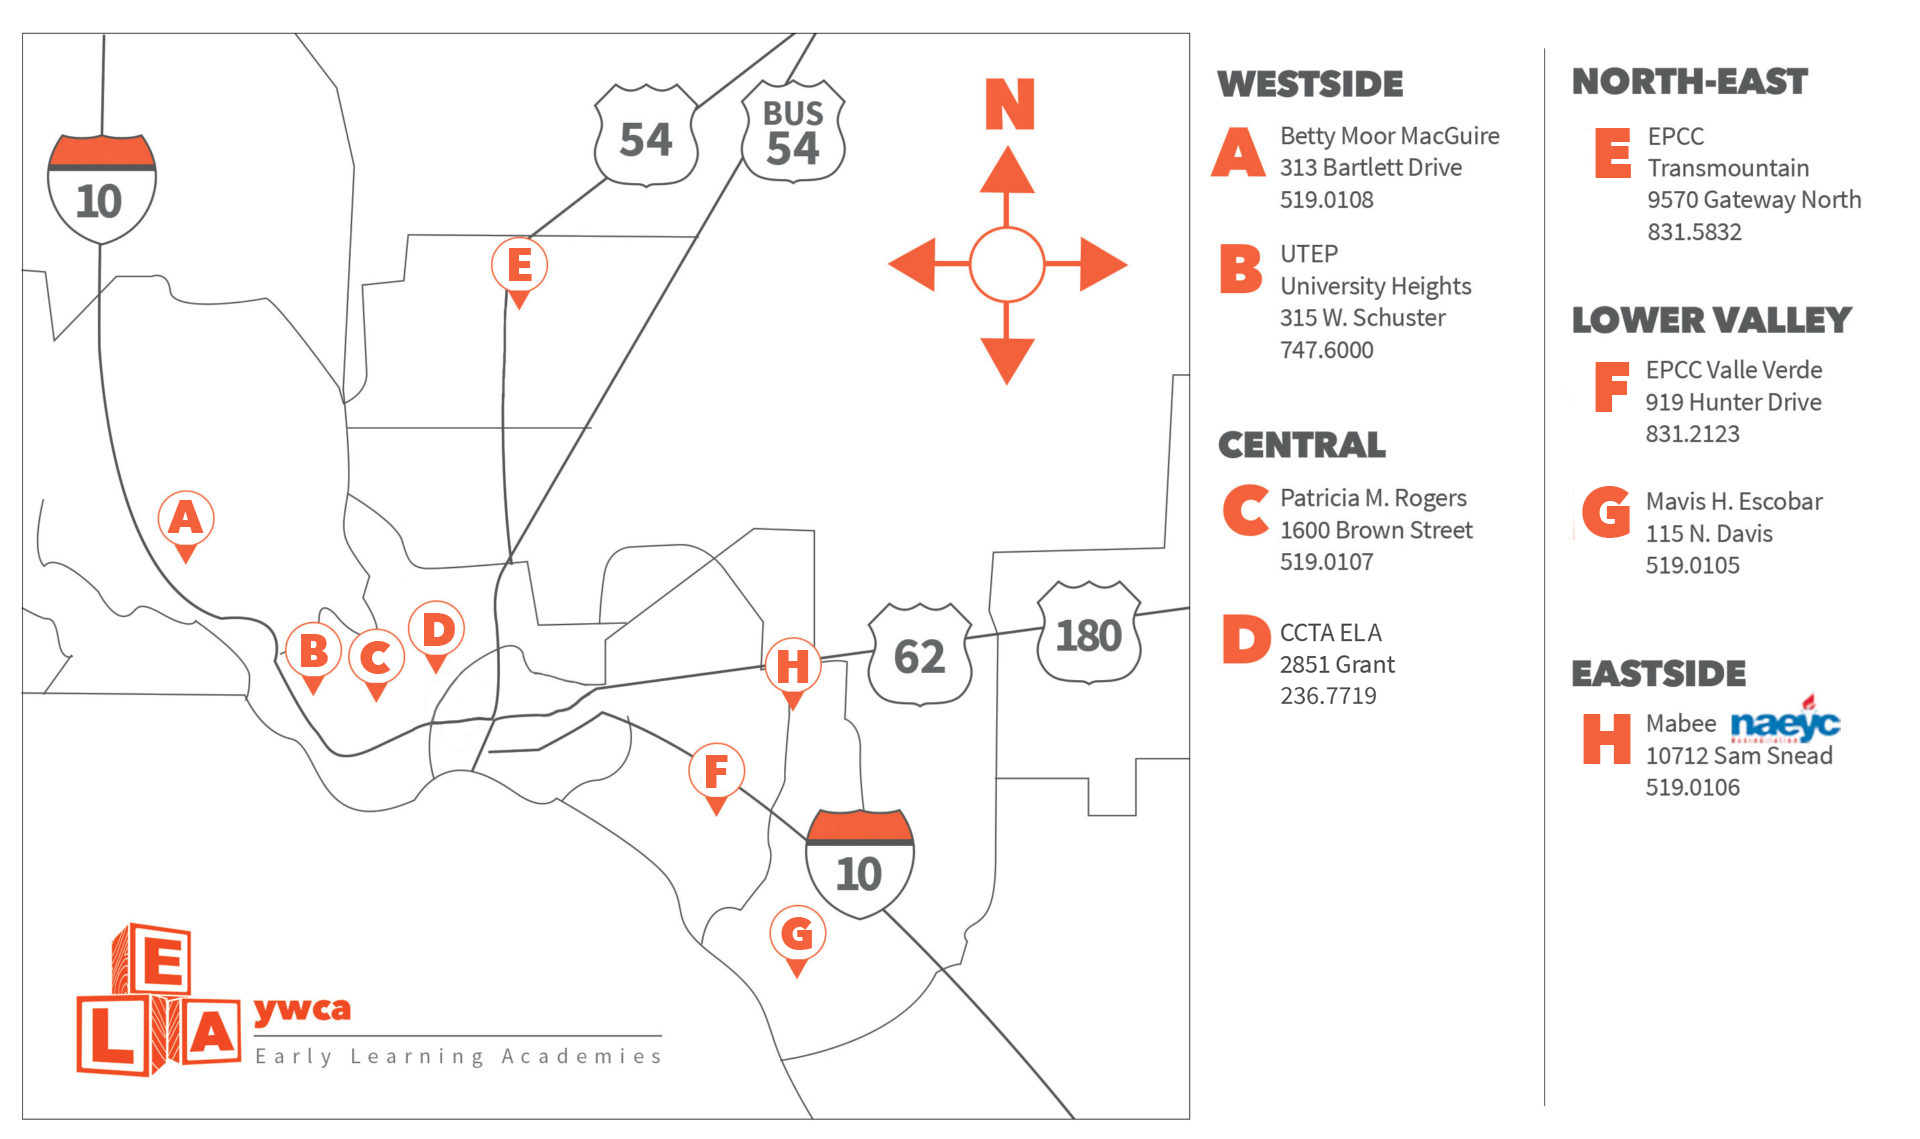 map of YWCA Early Learning Academy locations